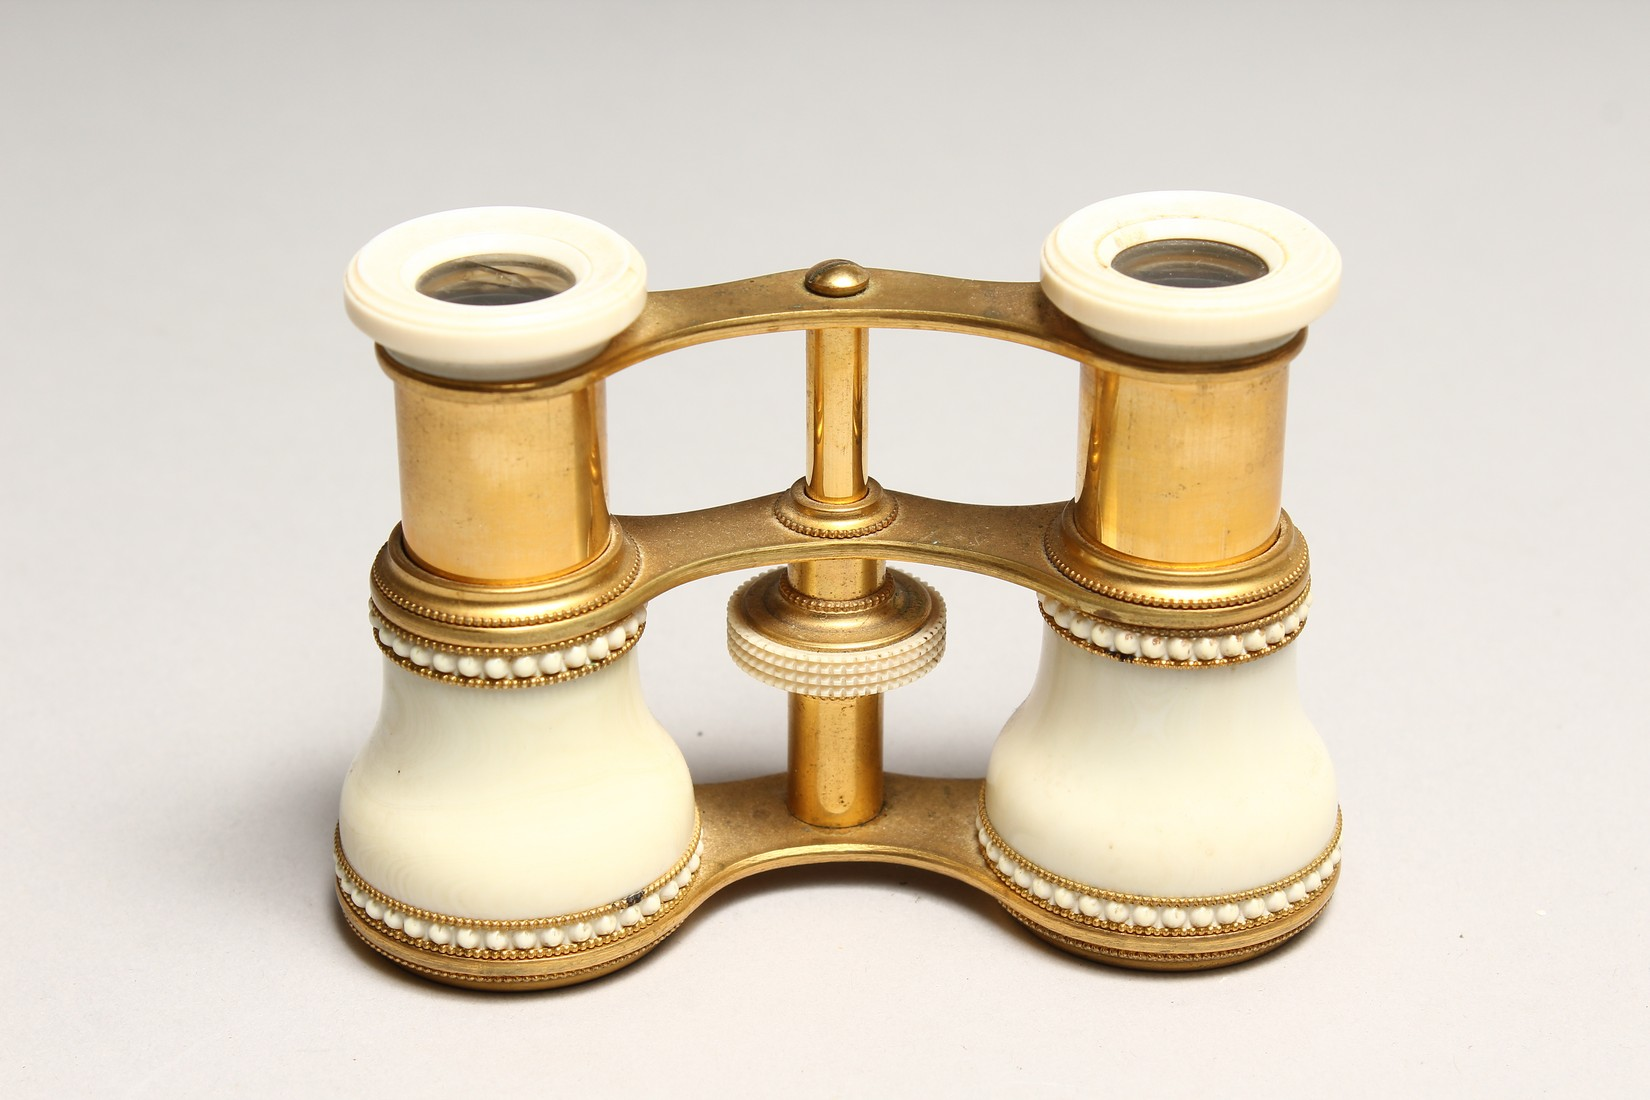 A PAIR OF IVORY AND GILT OPERA GLASSES 4.6ins long. - Image 6 of 6